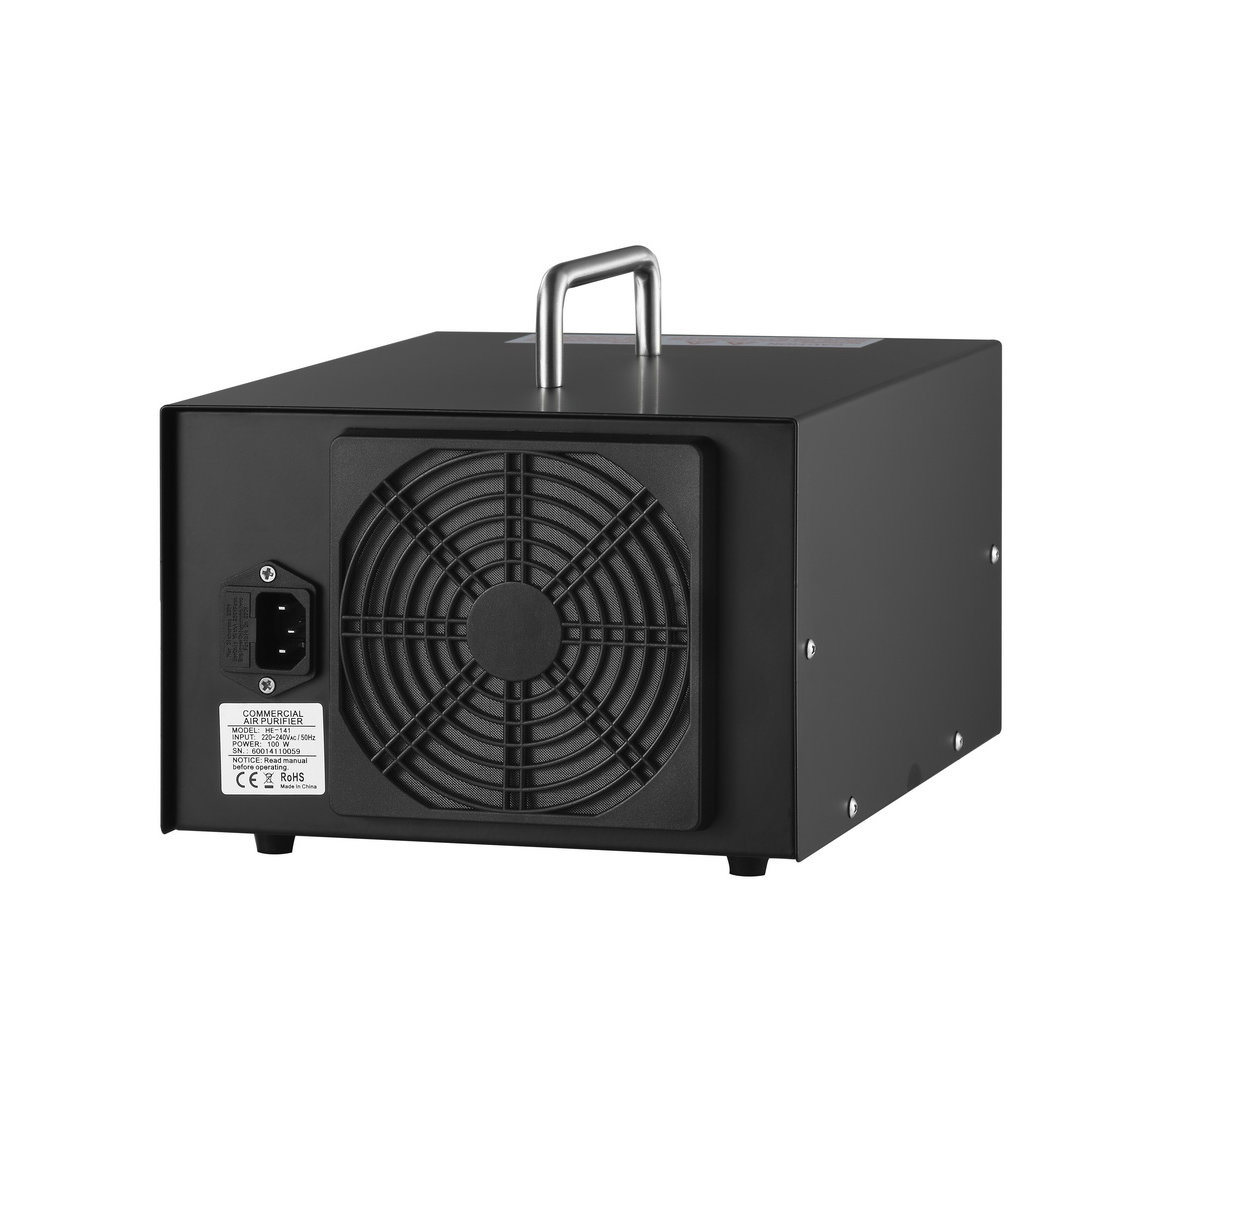 3.5-7.0g Ozone Generator Purification ---Commercial